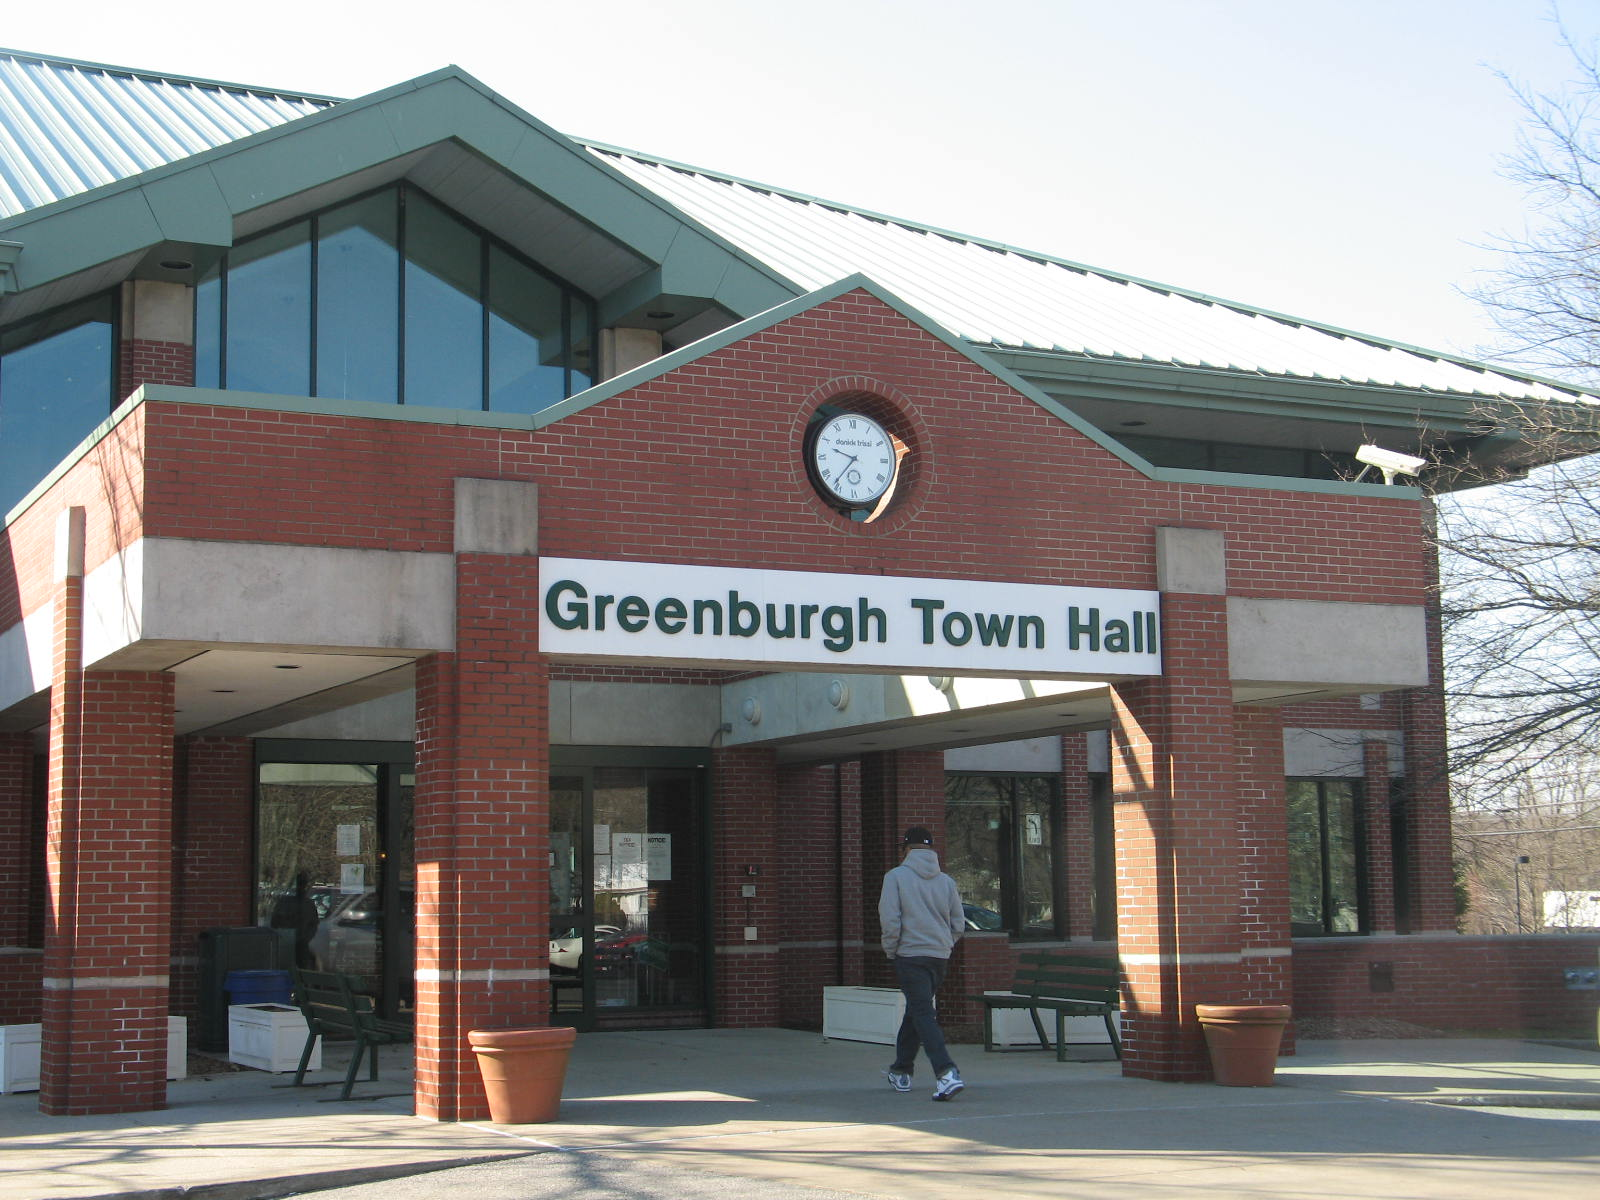 See what's open and closed in Greenburgh on Memorial Day.